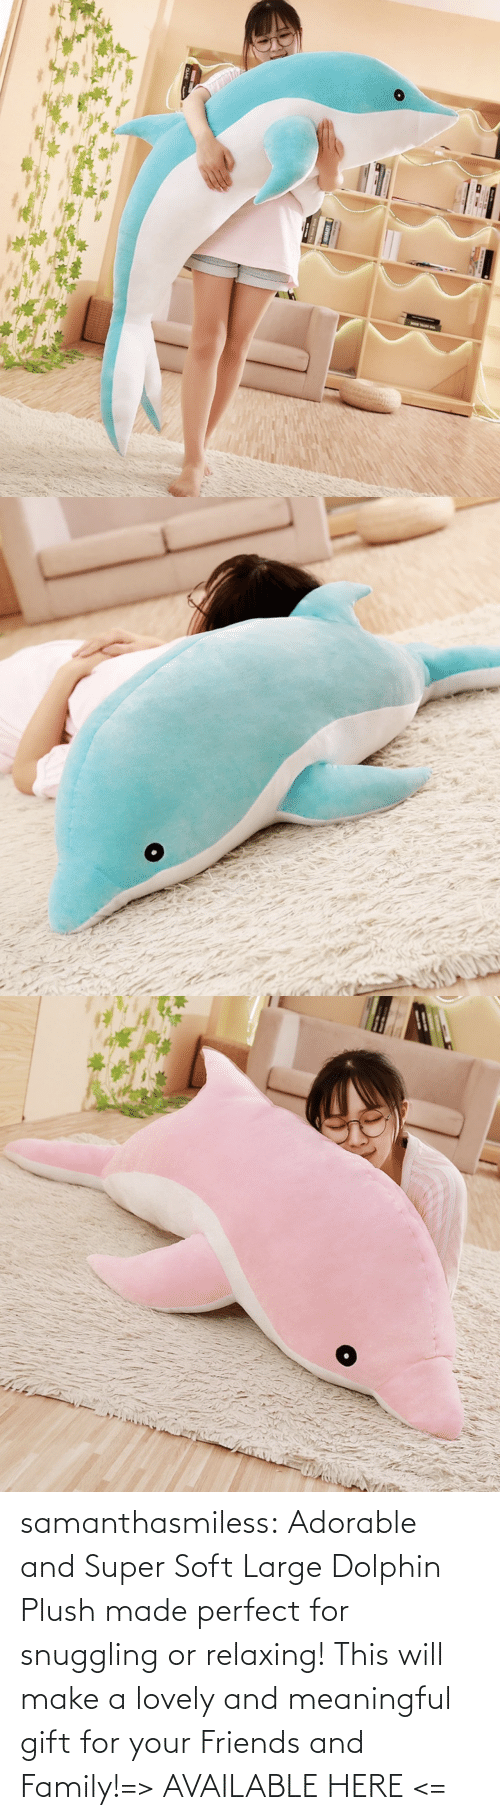 products: samanthasmiless:  Adorable and Super Soft Large Dolphin Plush made perfect for snuggling or relaxing! This will make a lovely and meaningful gift for your Friends and Family!=> AVAILABLE HERE <=